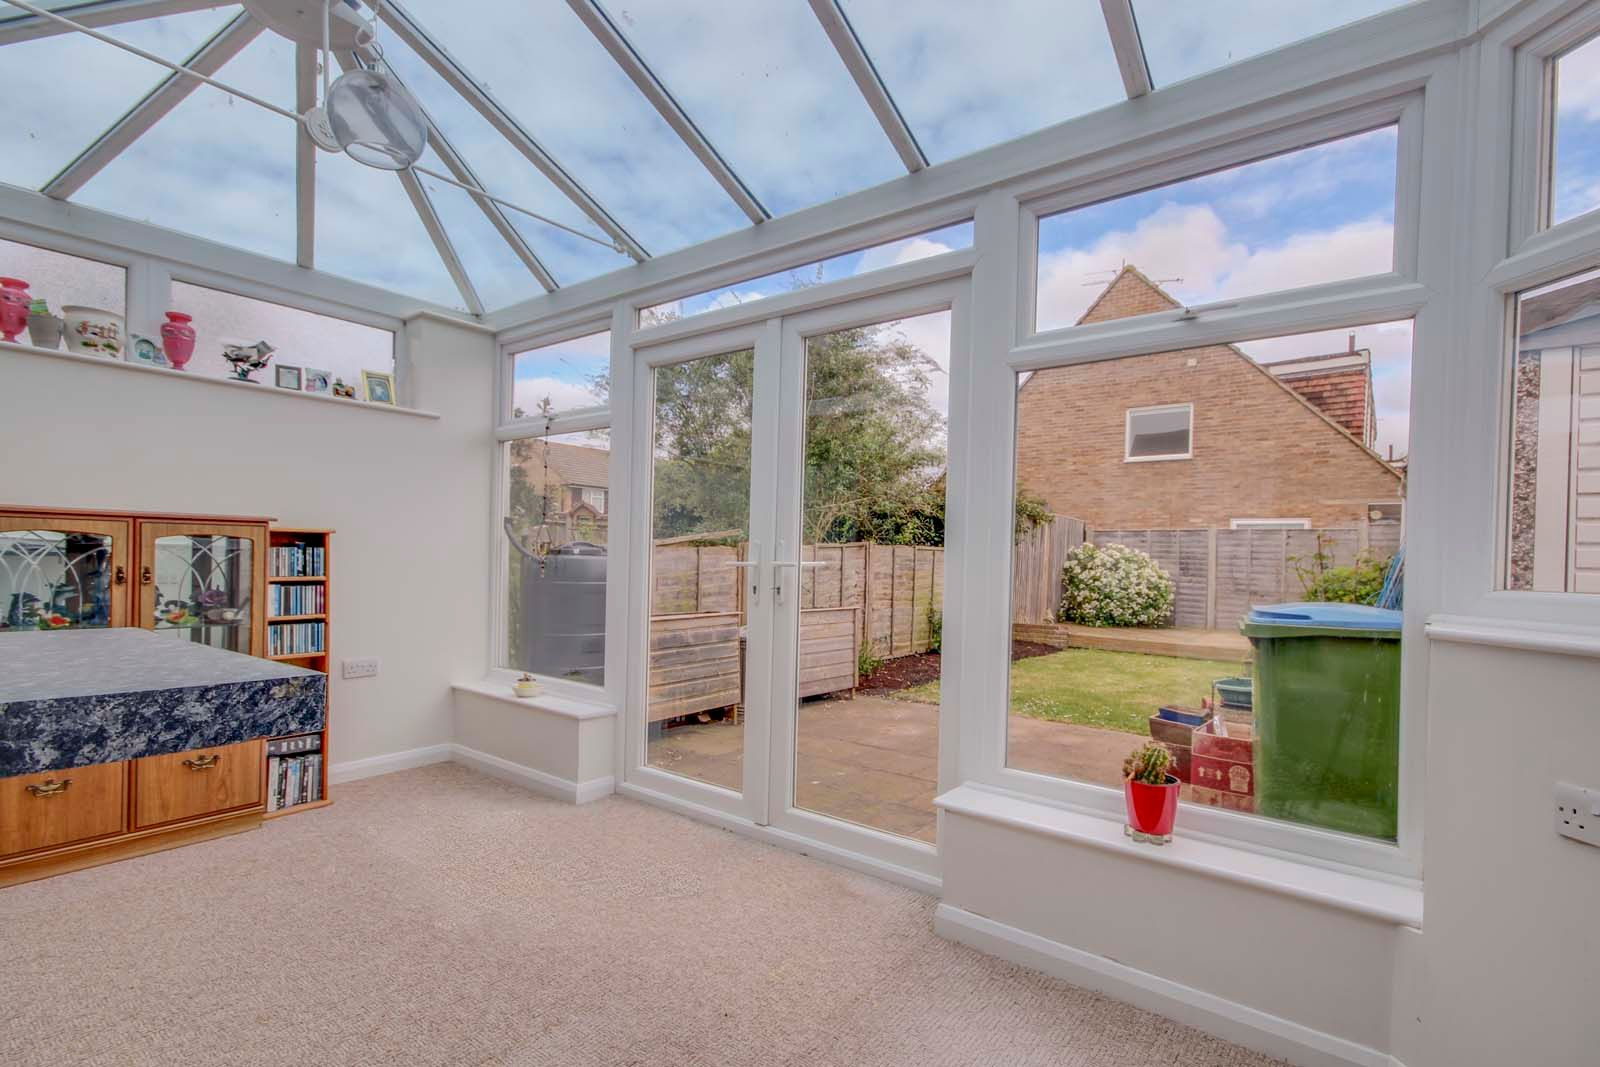 3 bed house for sale in Old Worthing Road  - Property Image 2